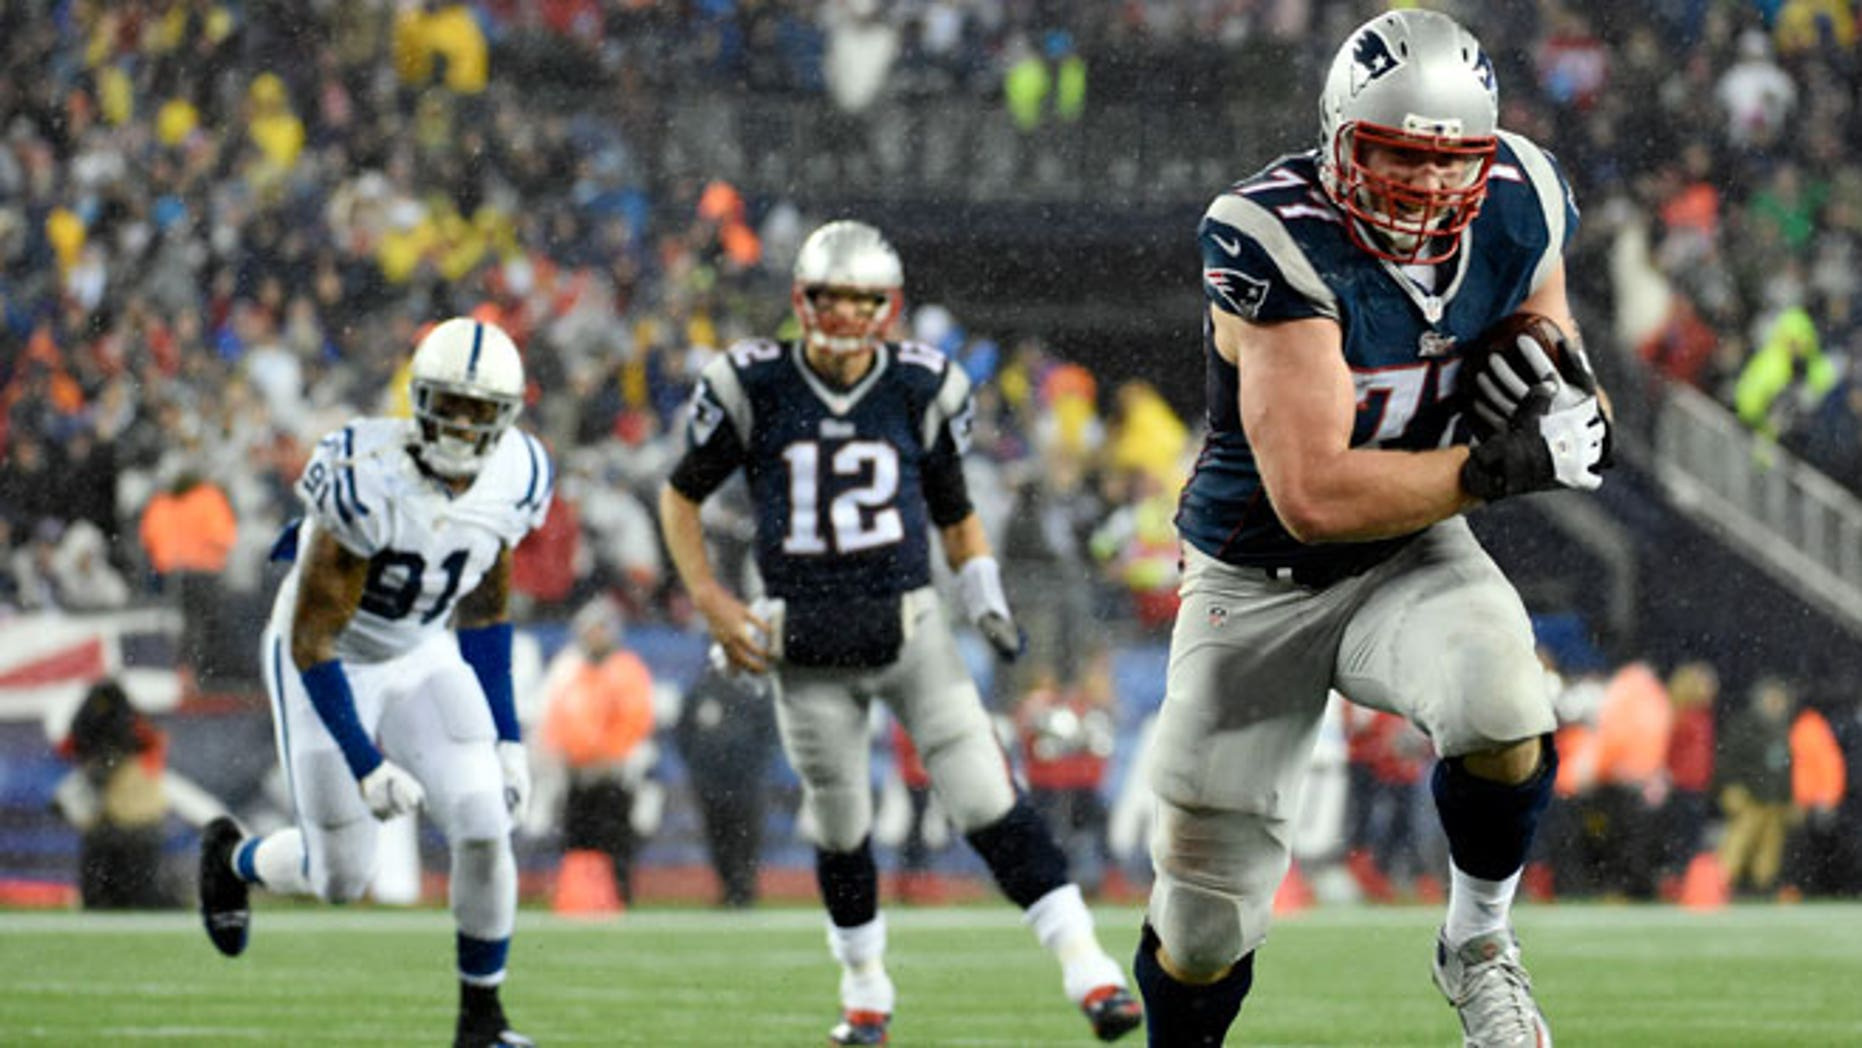 Jan 18, 2015; Foxborough, MA, USA; New England Patriots tackle Nate Solder (77) catches a pass from quarterback Tom Brady (12) and runs for a touchdown against the Indianapolis Colts in the third quarter in the AFC Championship Game at Gillette Stadium.